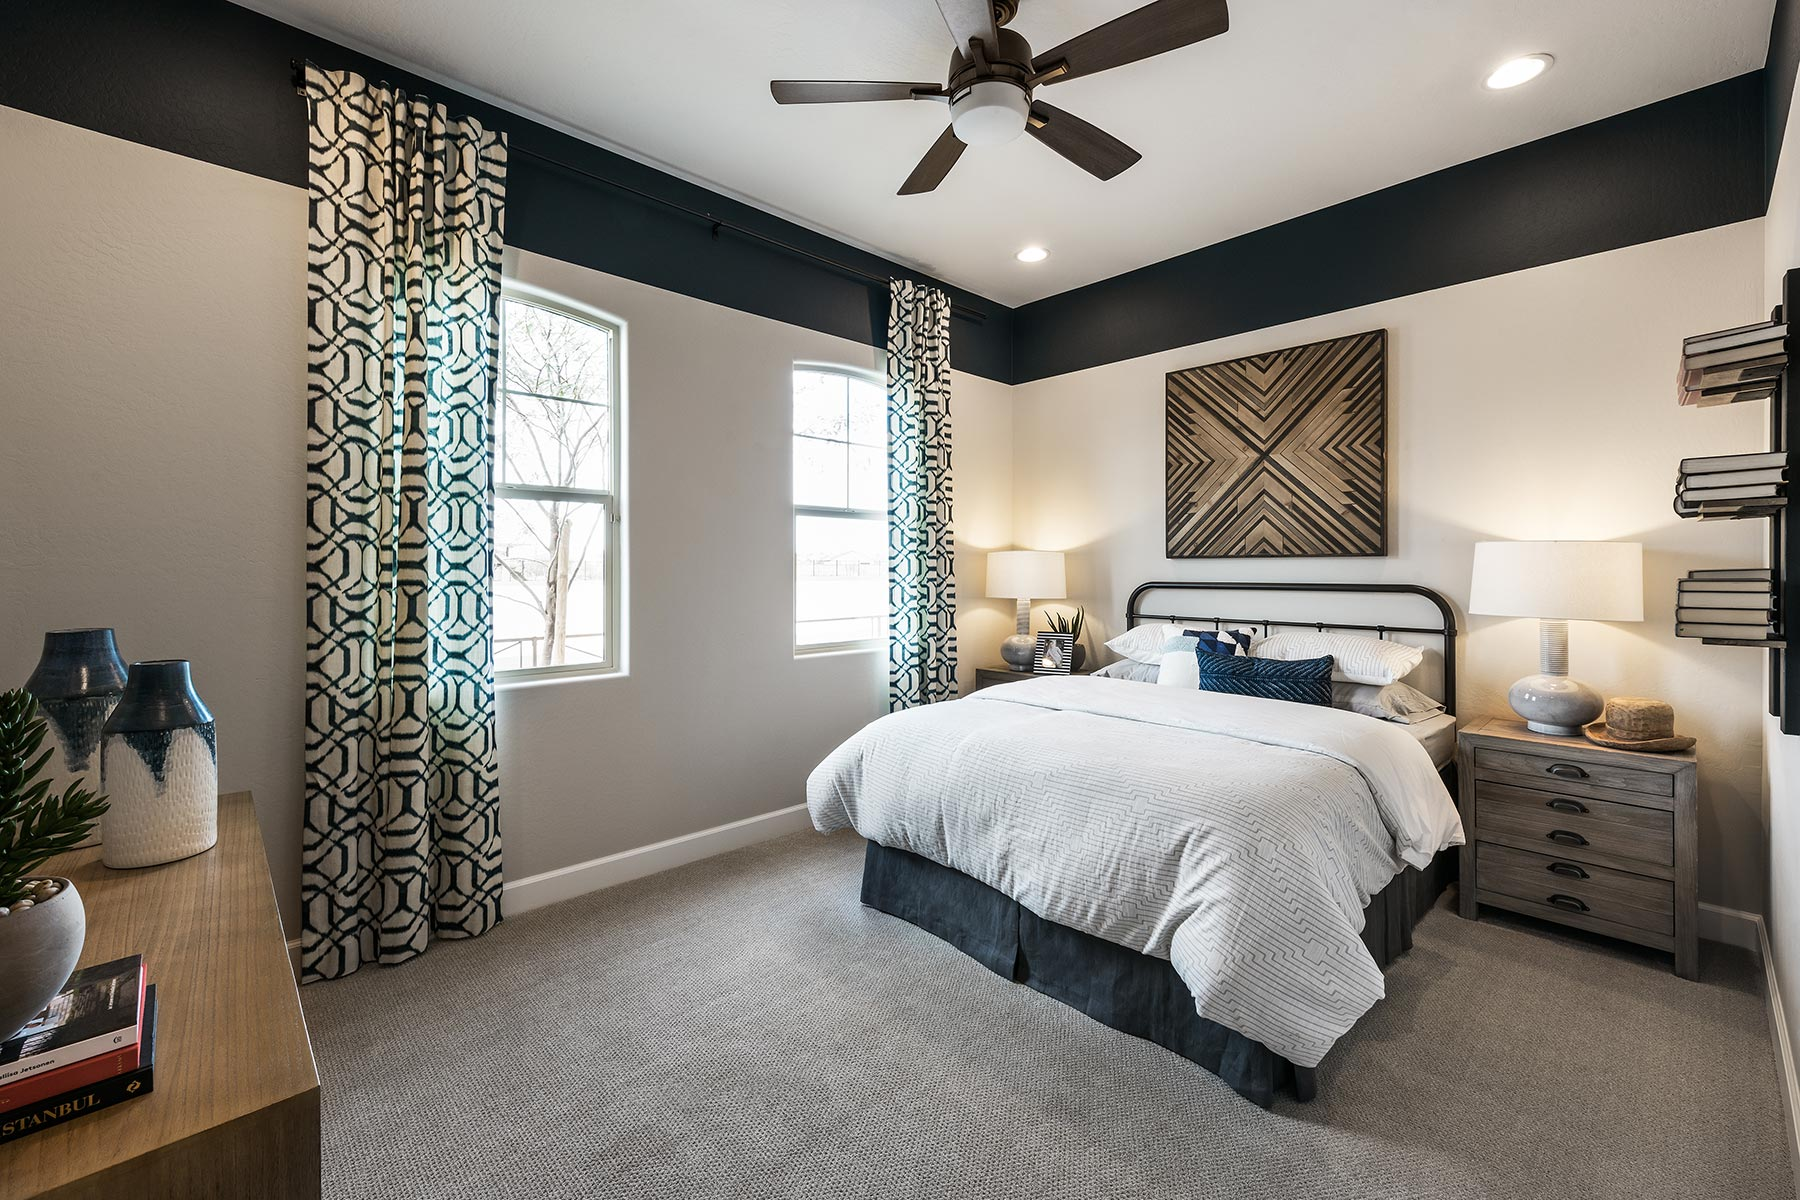 Azure Canyon Bedroom in Goodyear Arizona by Mattamy Homes